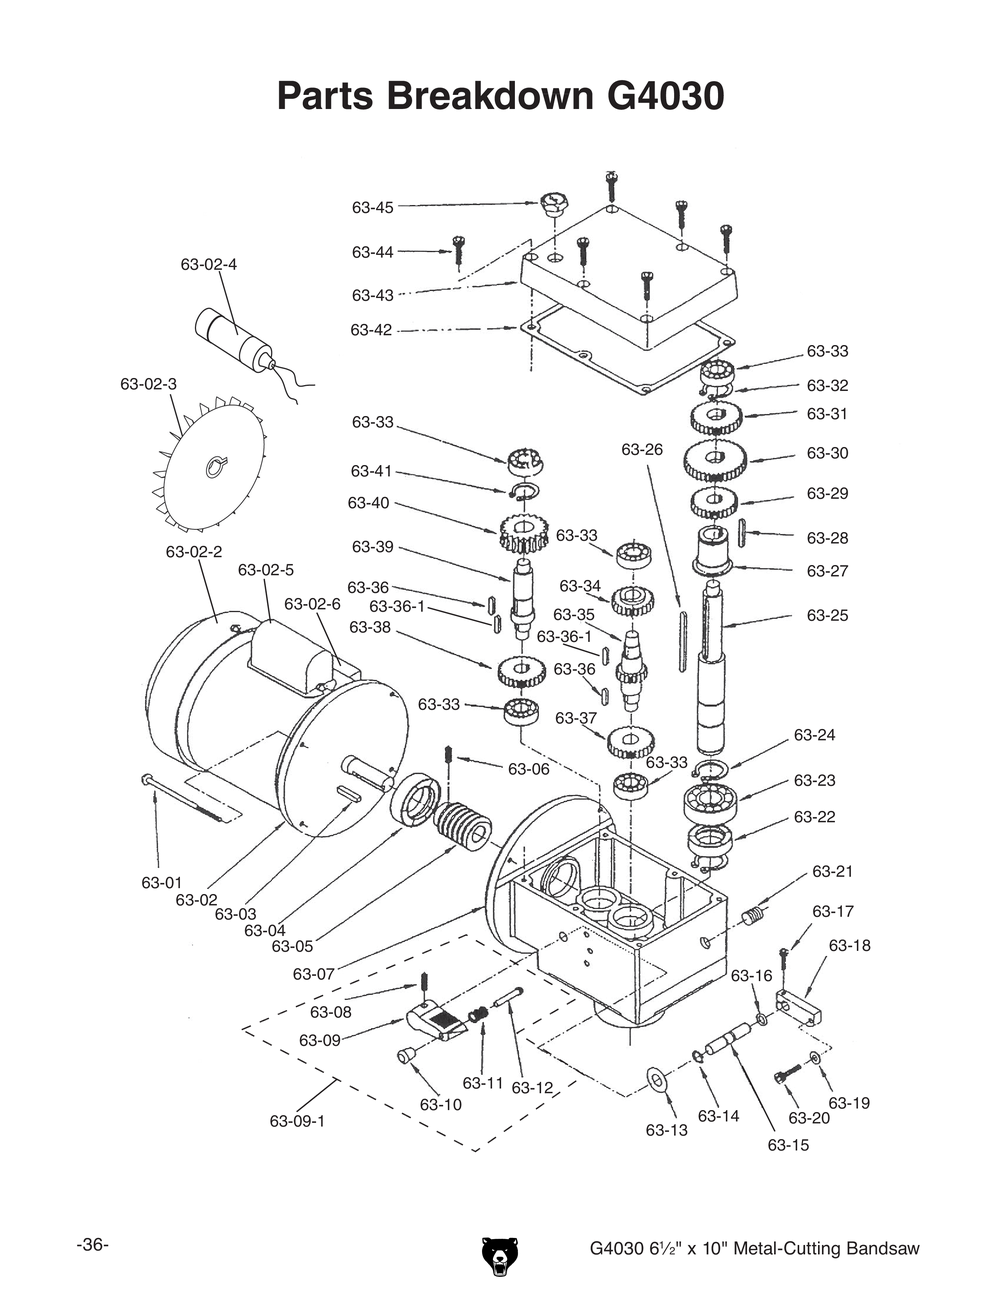 Bandsaw Wiring Diagram Auto Electrical Vanagon Alternator 213 8155 Metal Band Saw Parts